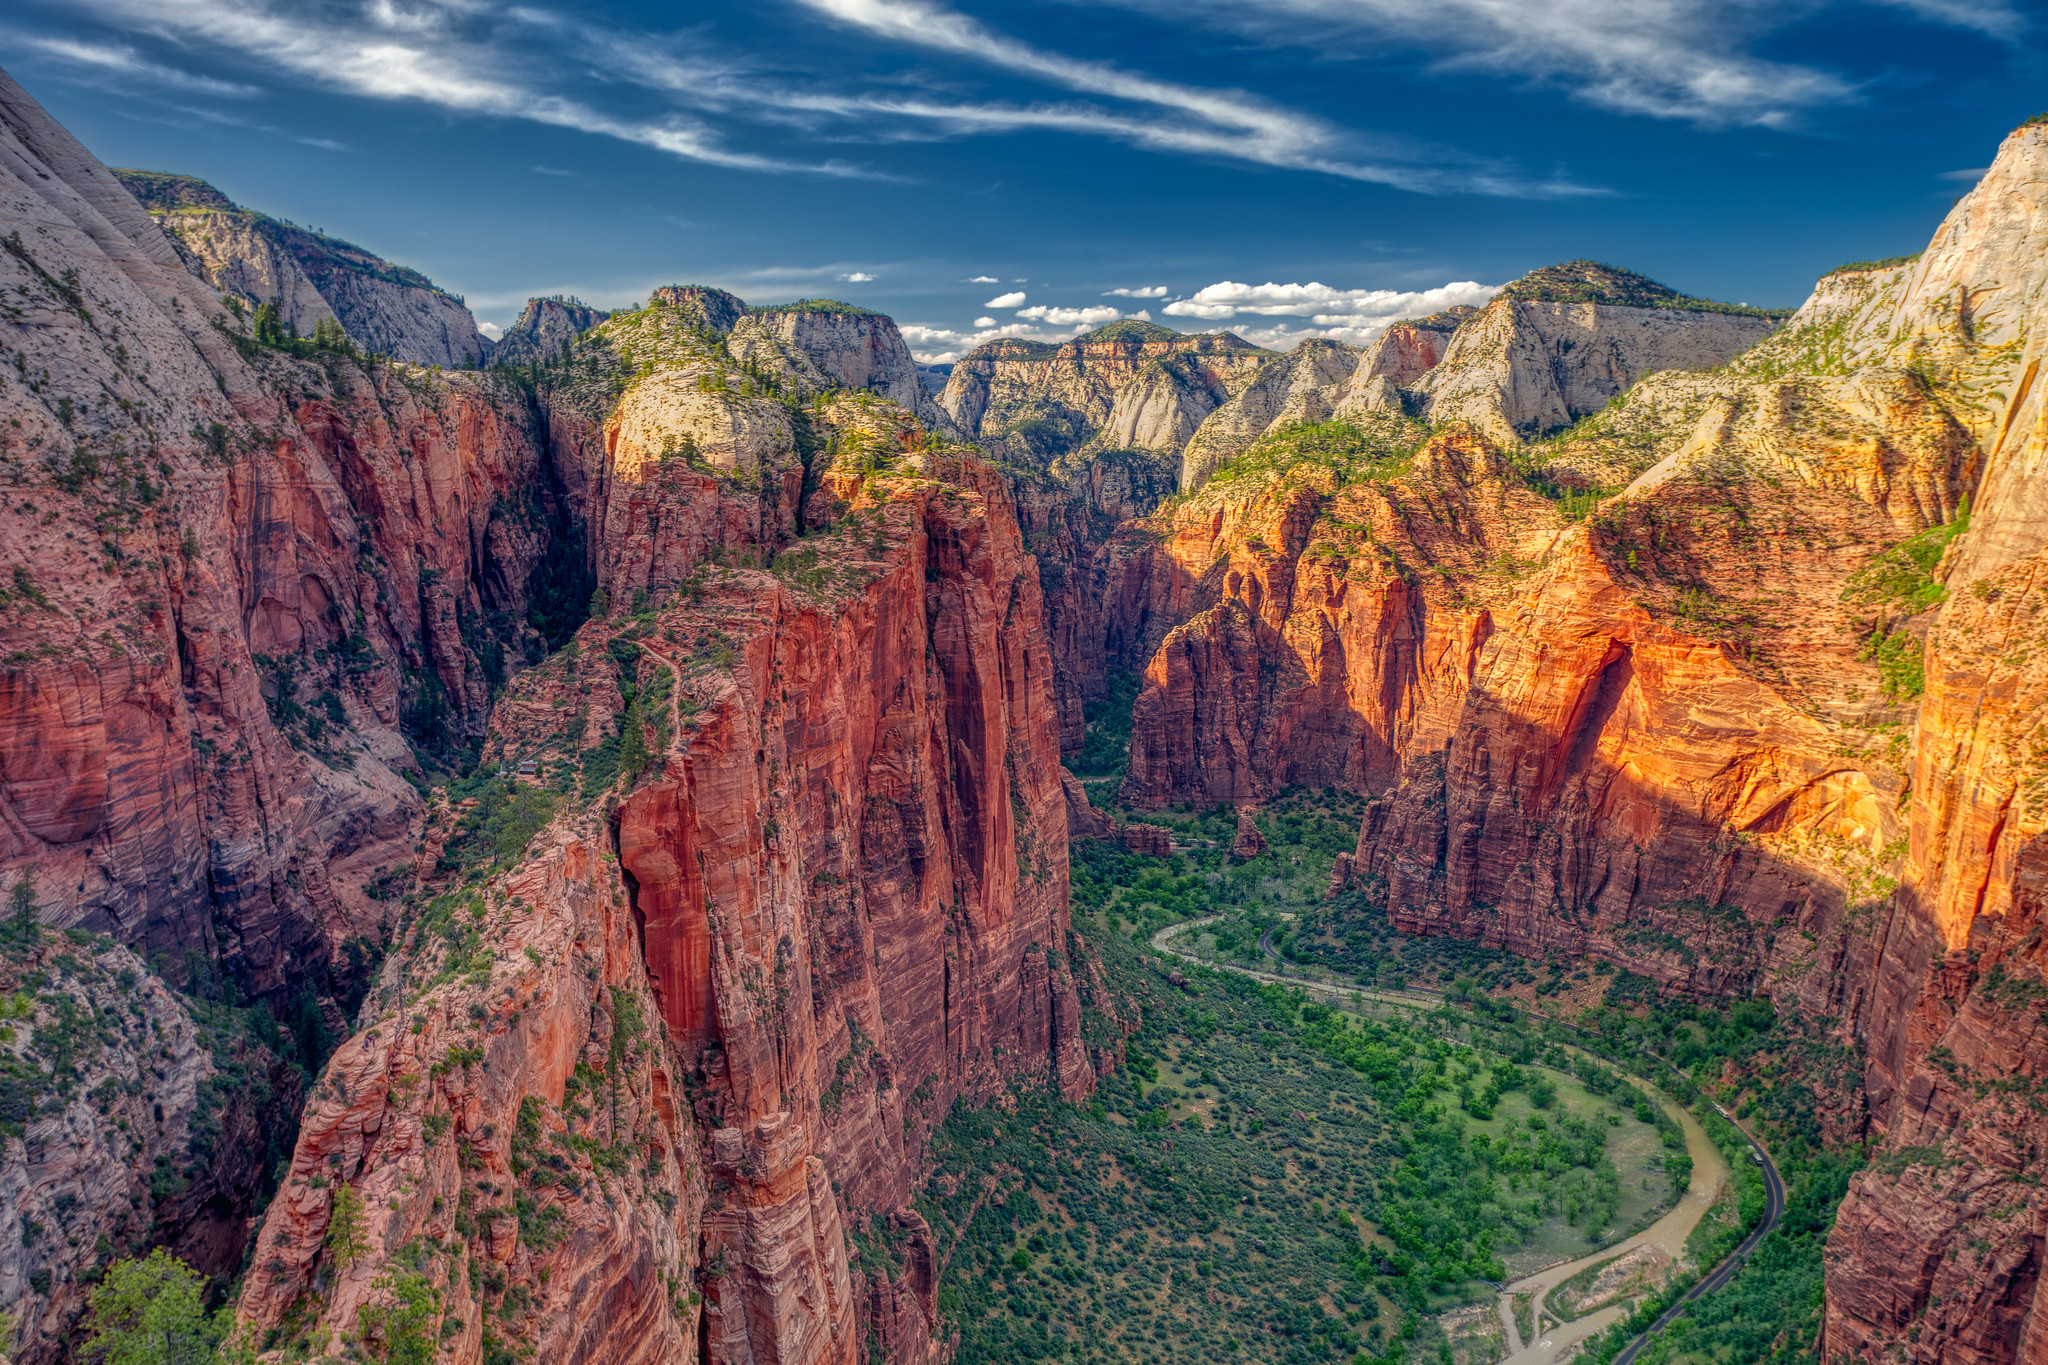 Zion National Park: Best Photo Spots on Easy & Difficult Hikes